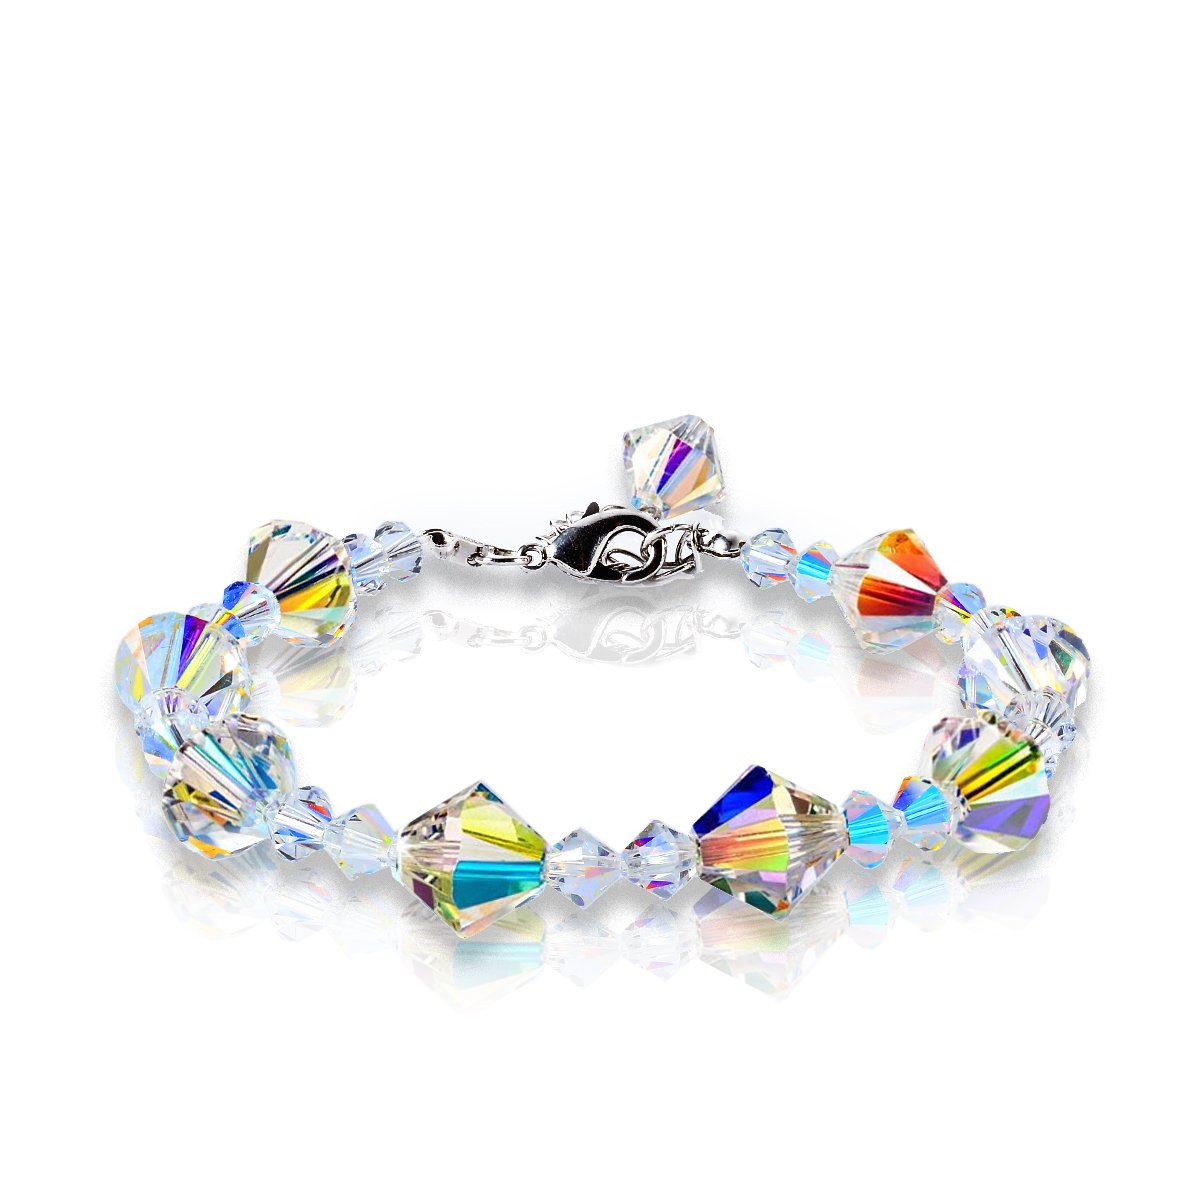 KesaPlan Brand Fashion Gift A Little Romance Crystal Charms Bracelets Series, Crystals from Swarovski (Triangle-Crystals)